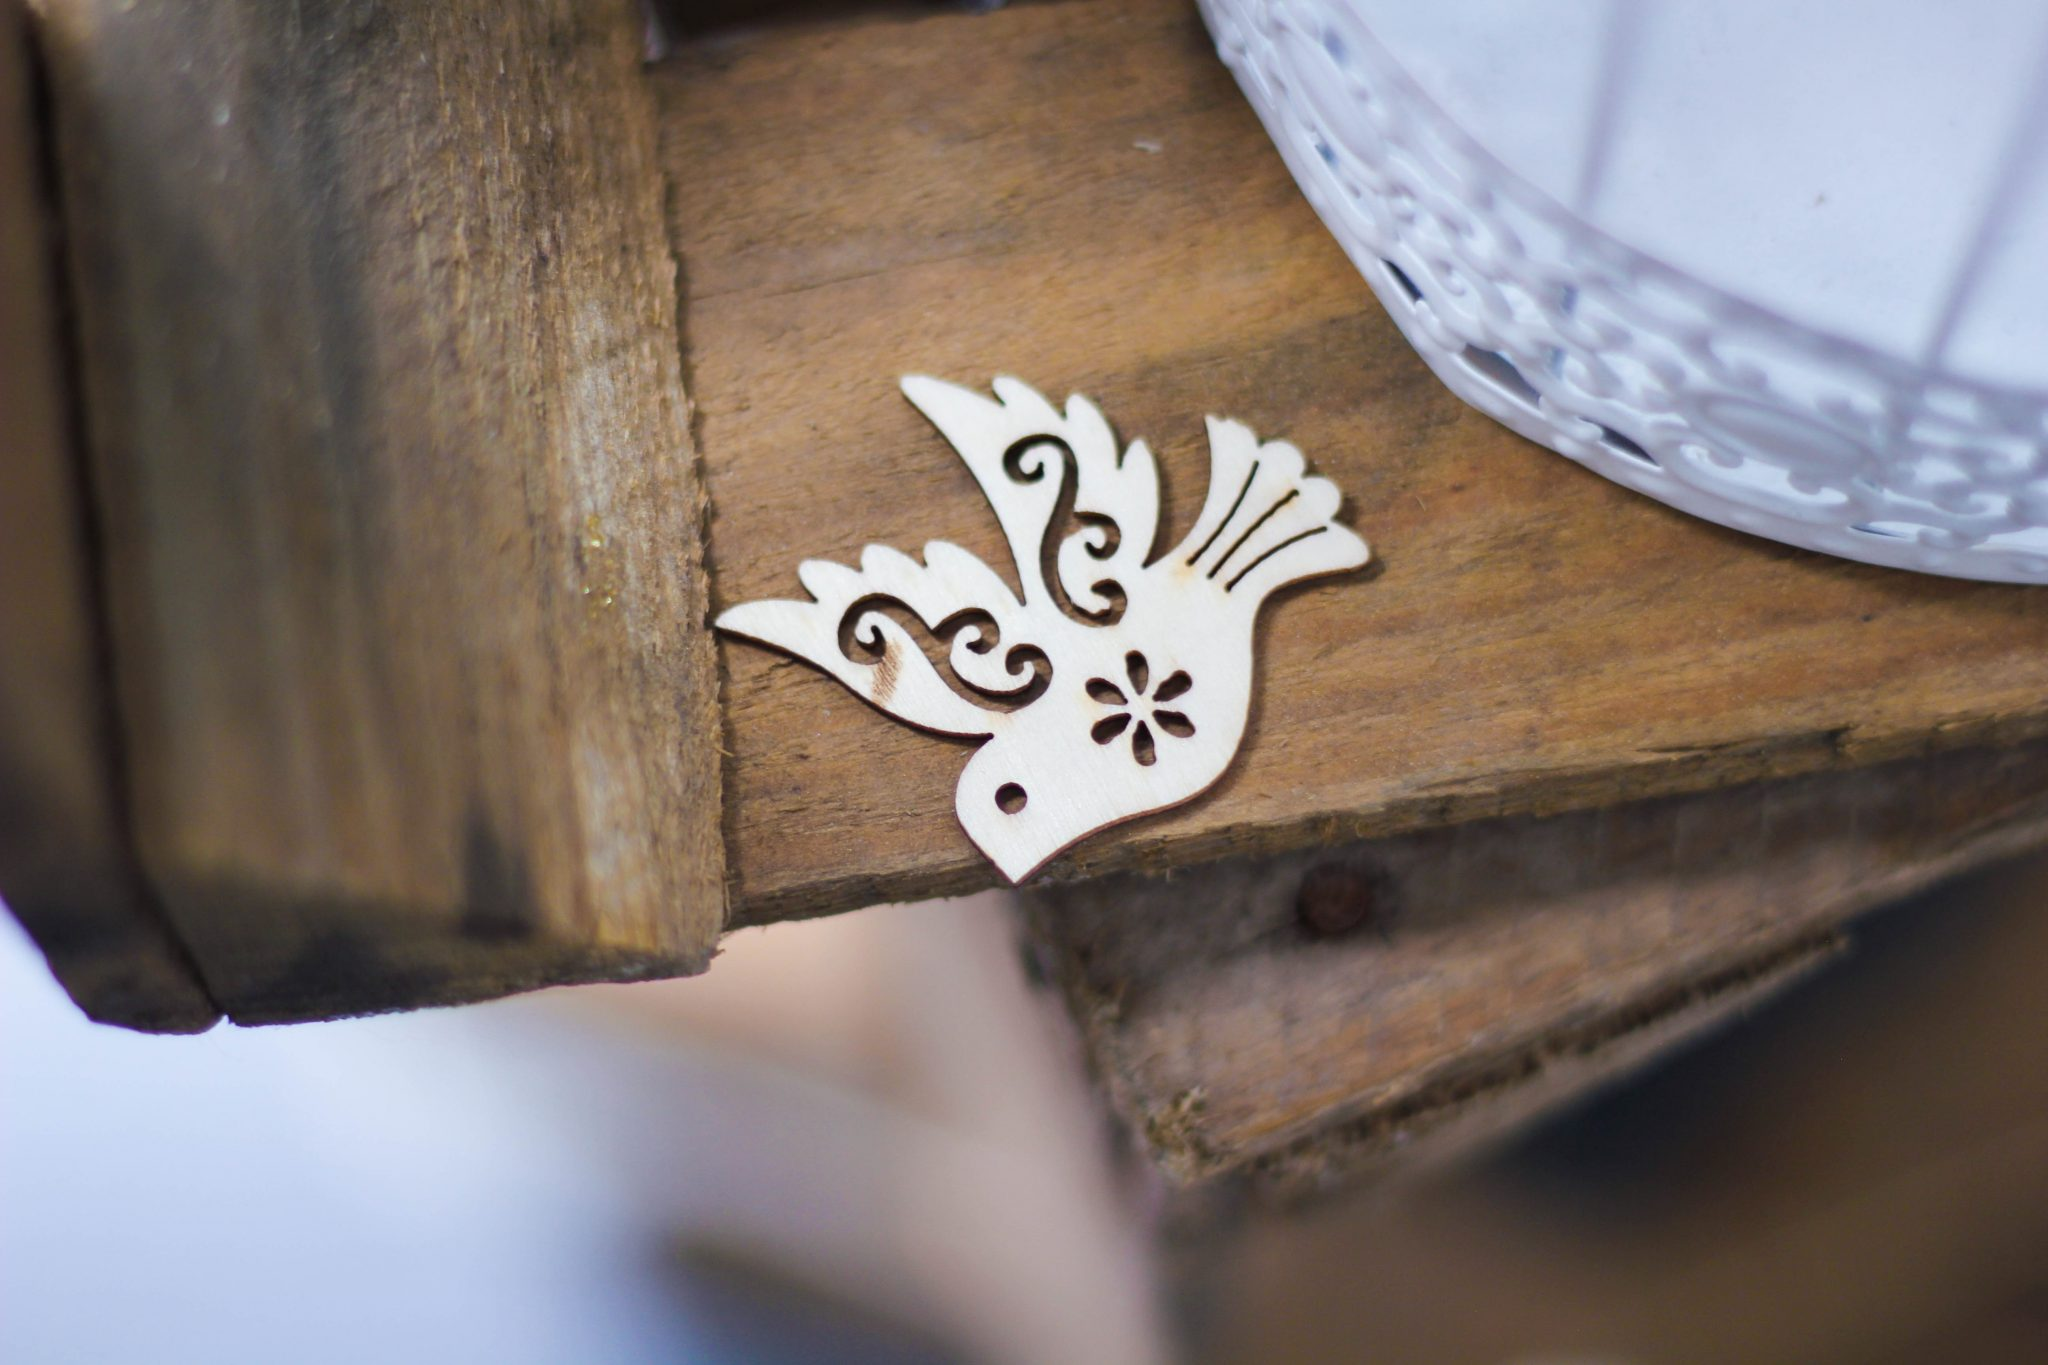 Wooden cutout of a dove on a table.